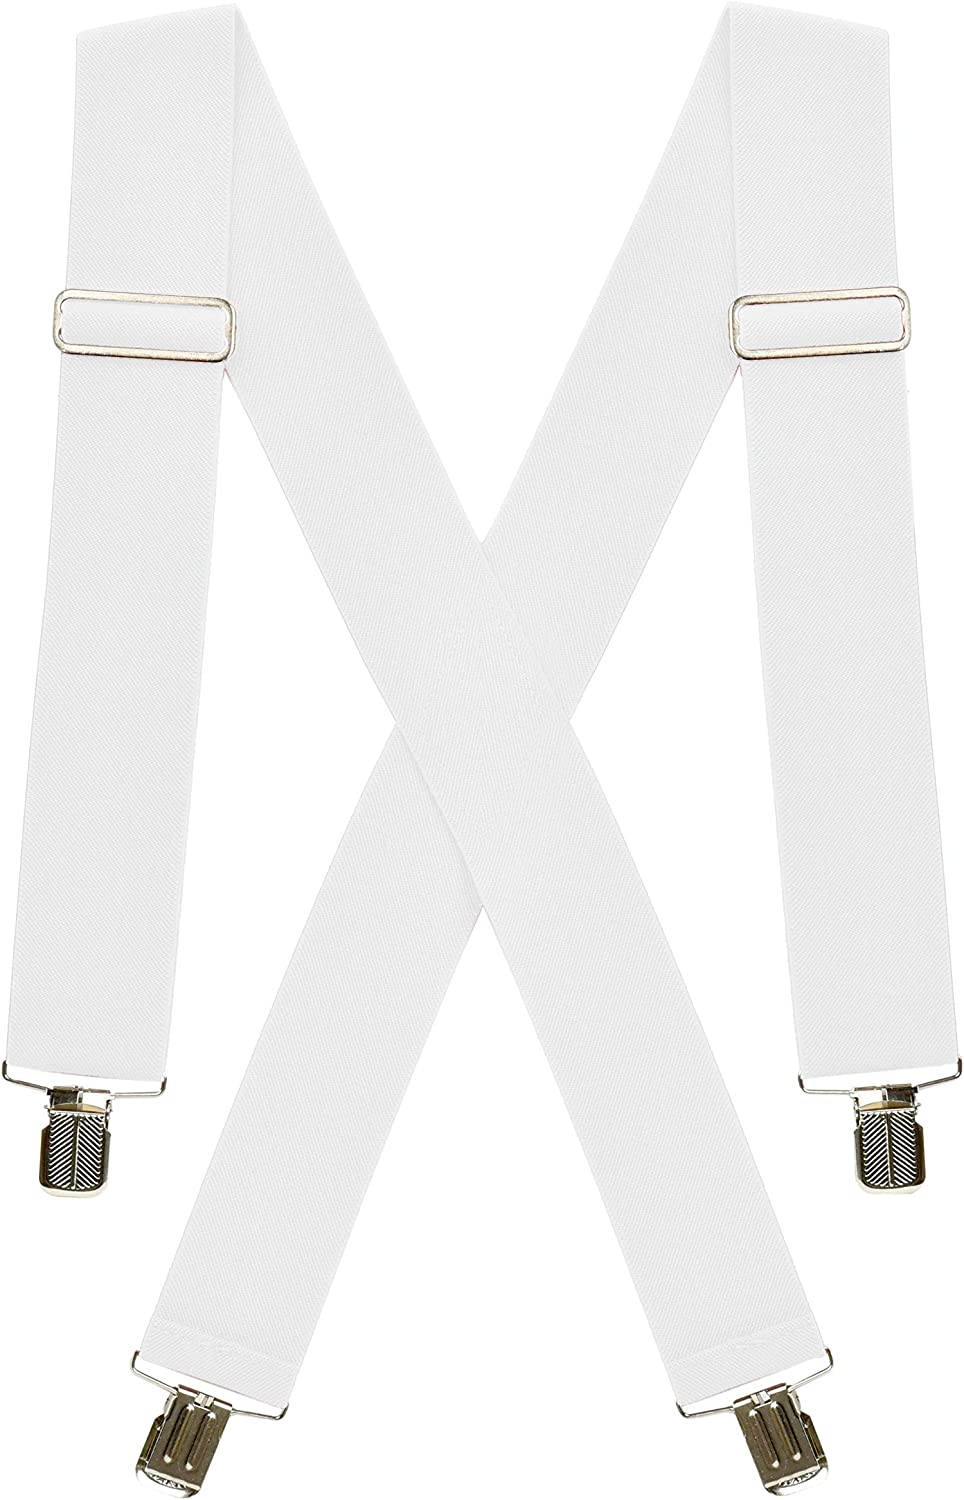 """Hold'Em Max 62% National uniform free shipping OFF Suspenders for men Heavy utility Duty 2"""" Clips"""